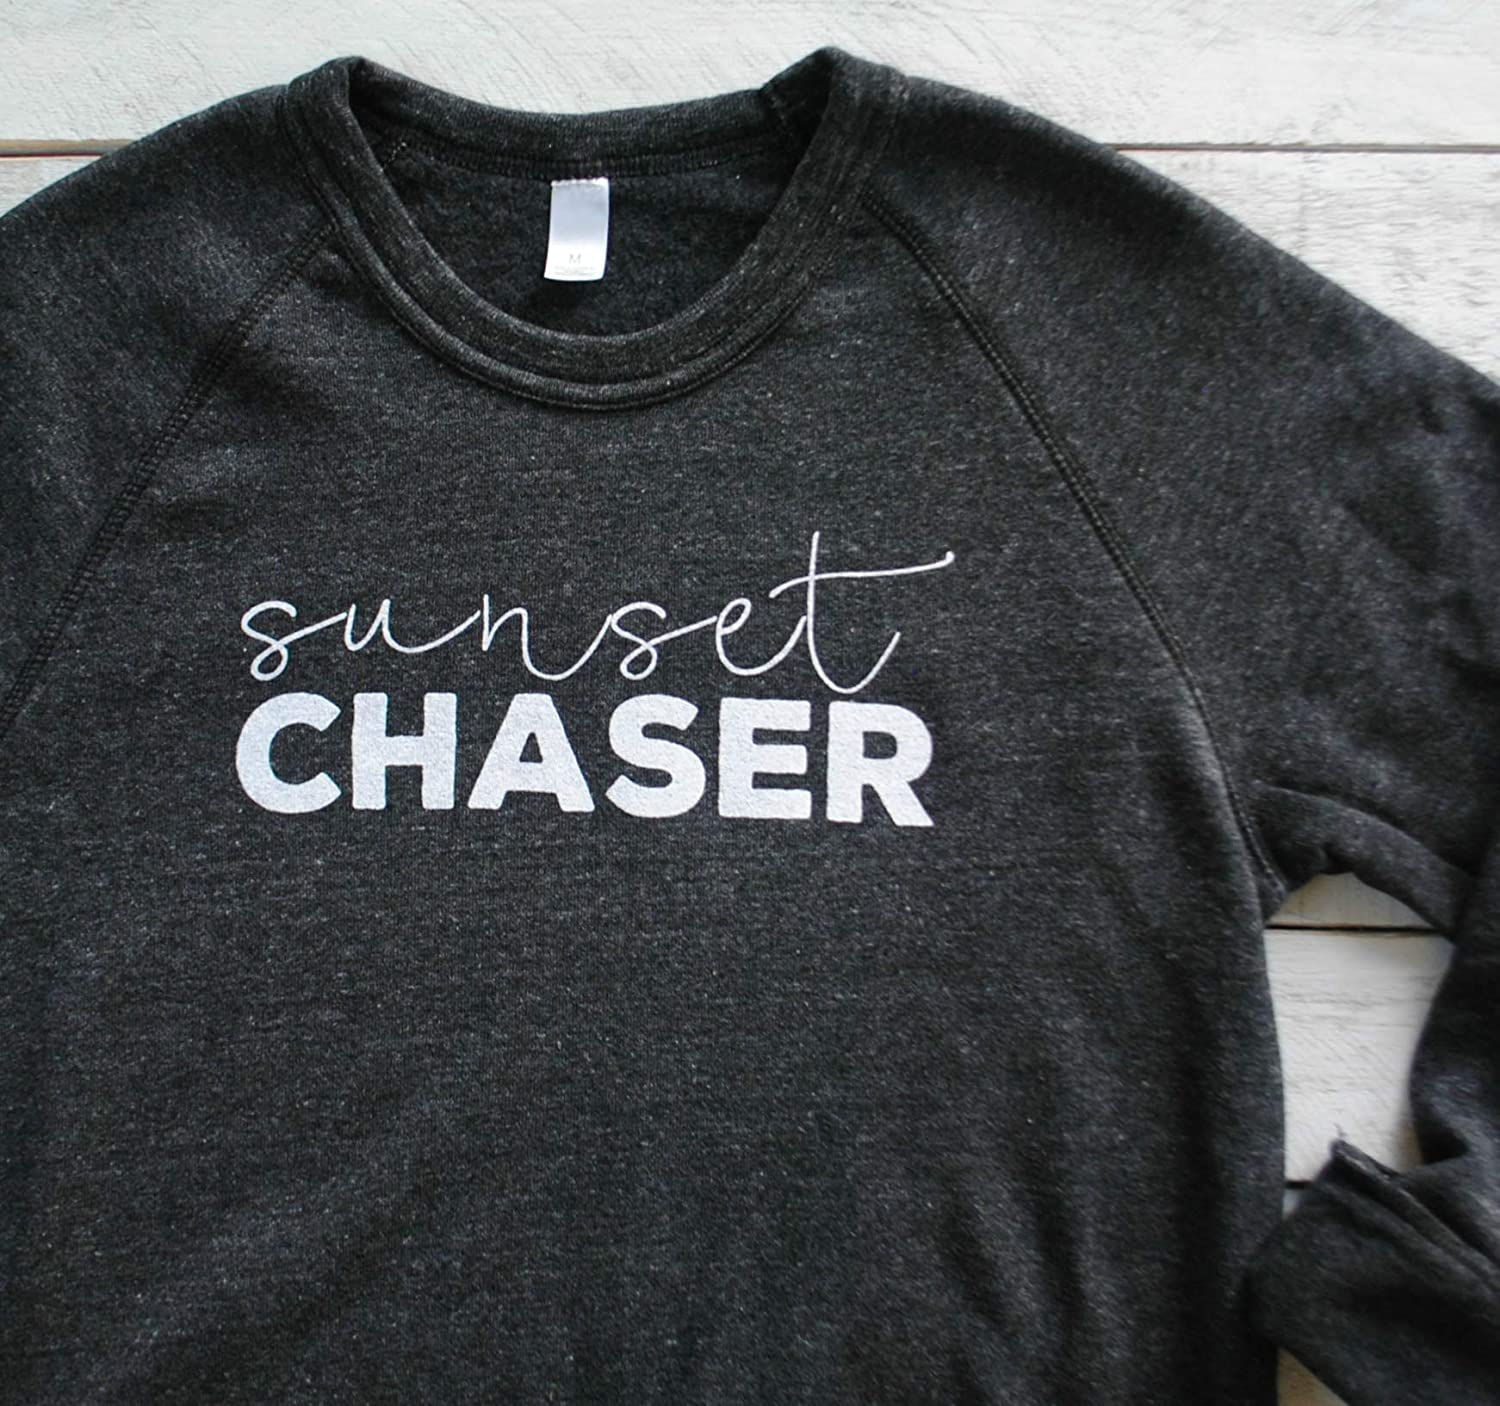 Sunset Chaser Cozy Sweater Fall Crewneck Sweatshirt Wanderlust Outdoor Gift